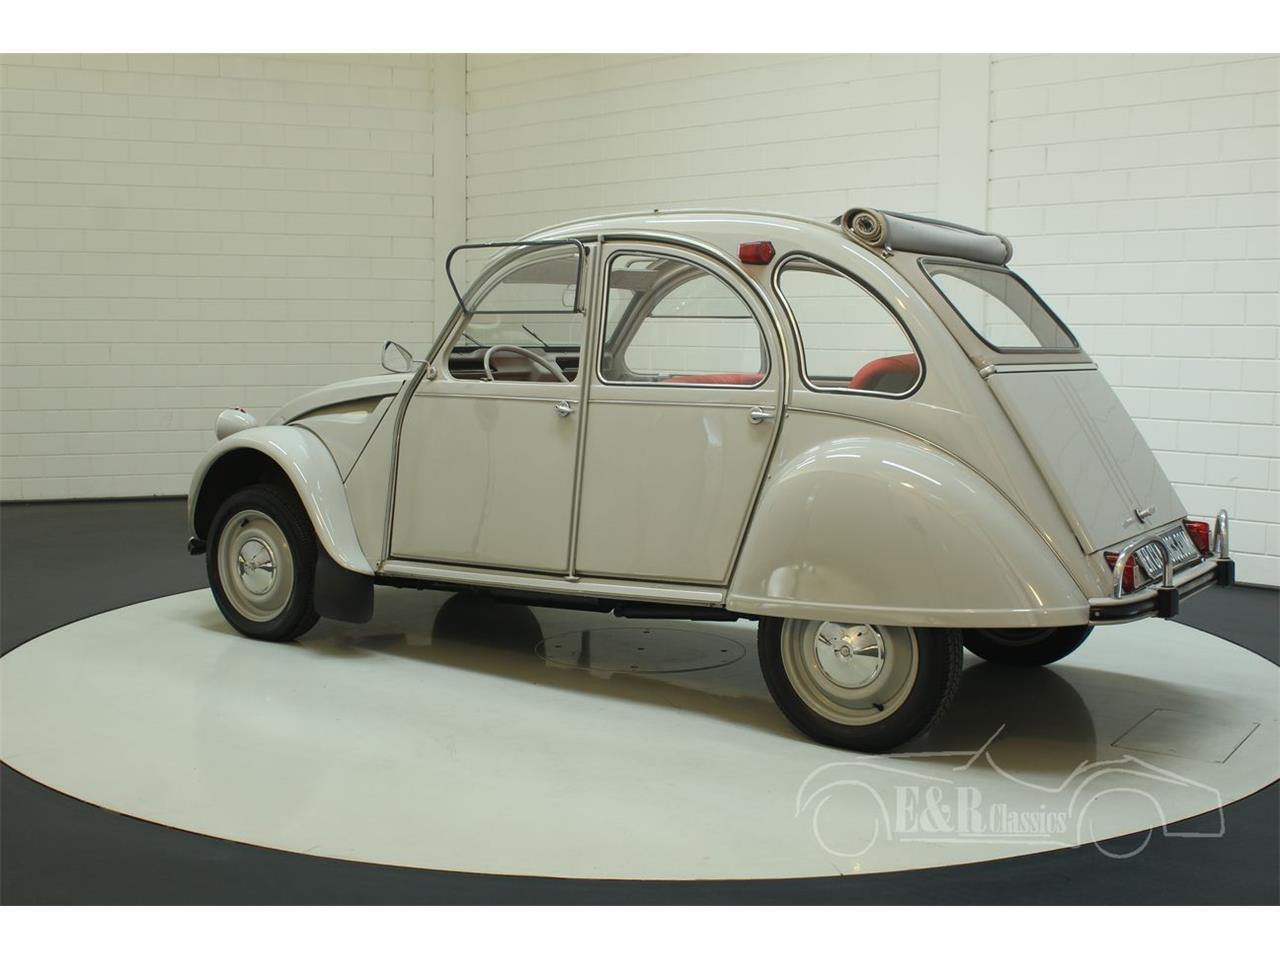 Large Picture of '66 Citroen 2CV located in - Keine Angabe - - $22,550.00 Offered by E & R Classics - PGSV